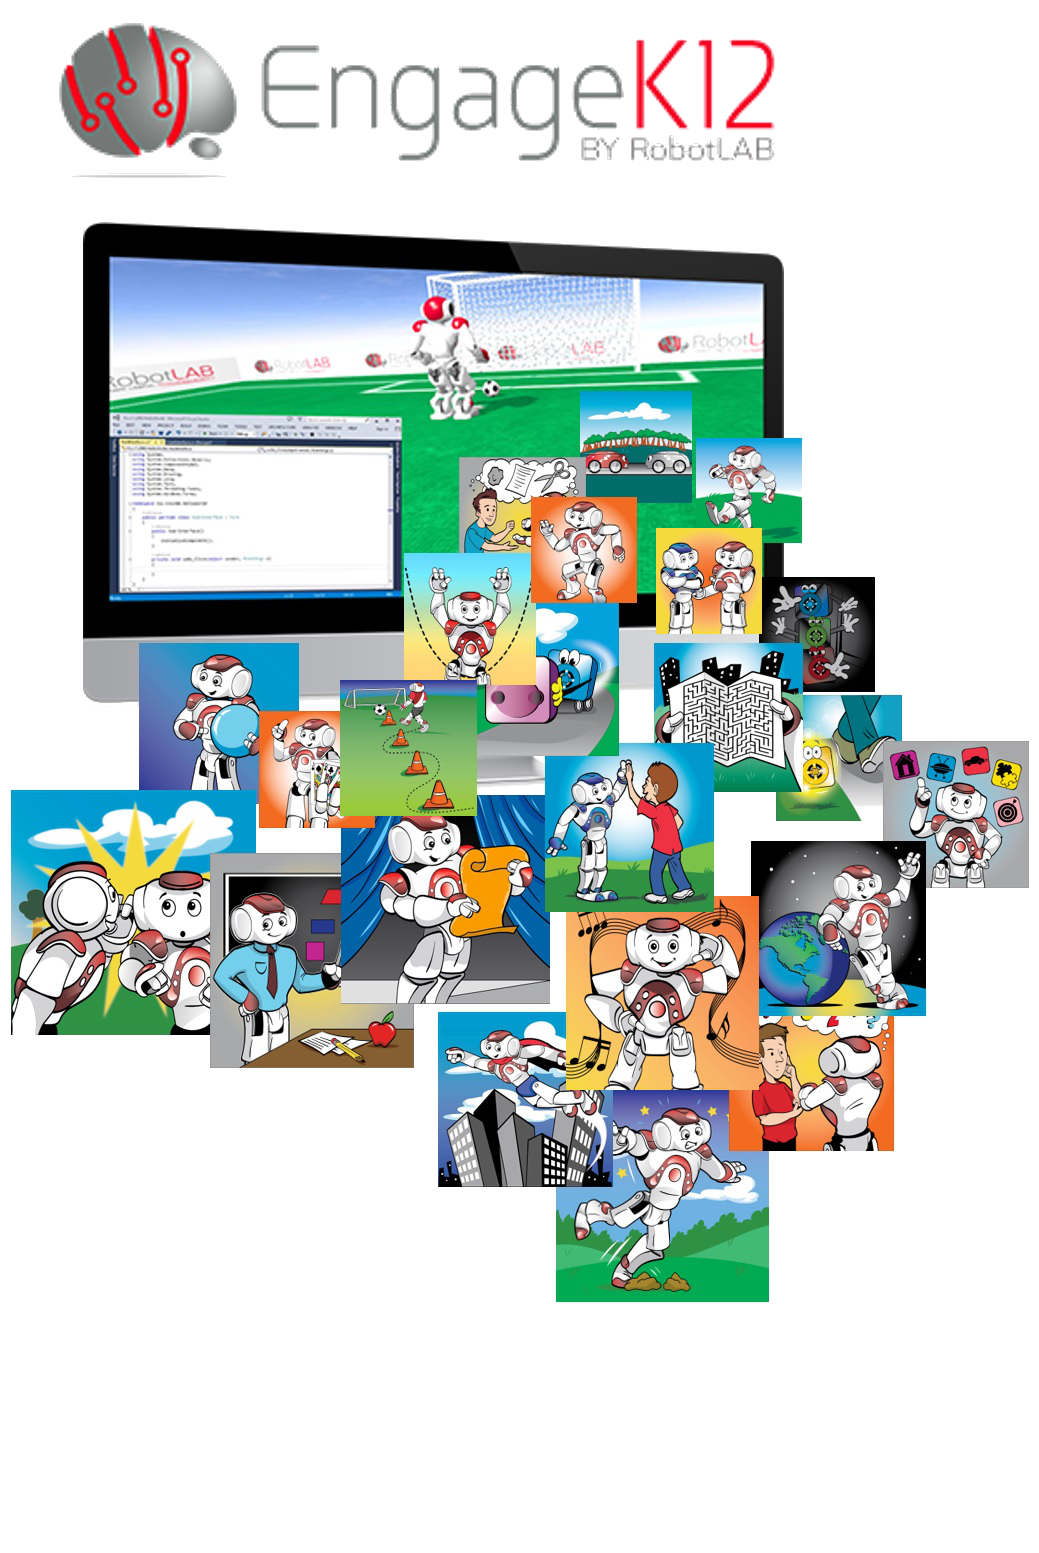 Engage k. Textbook clipart curriculum